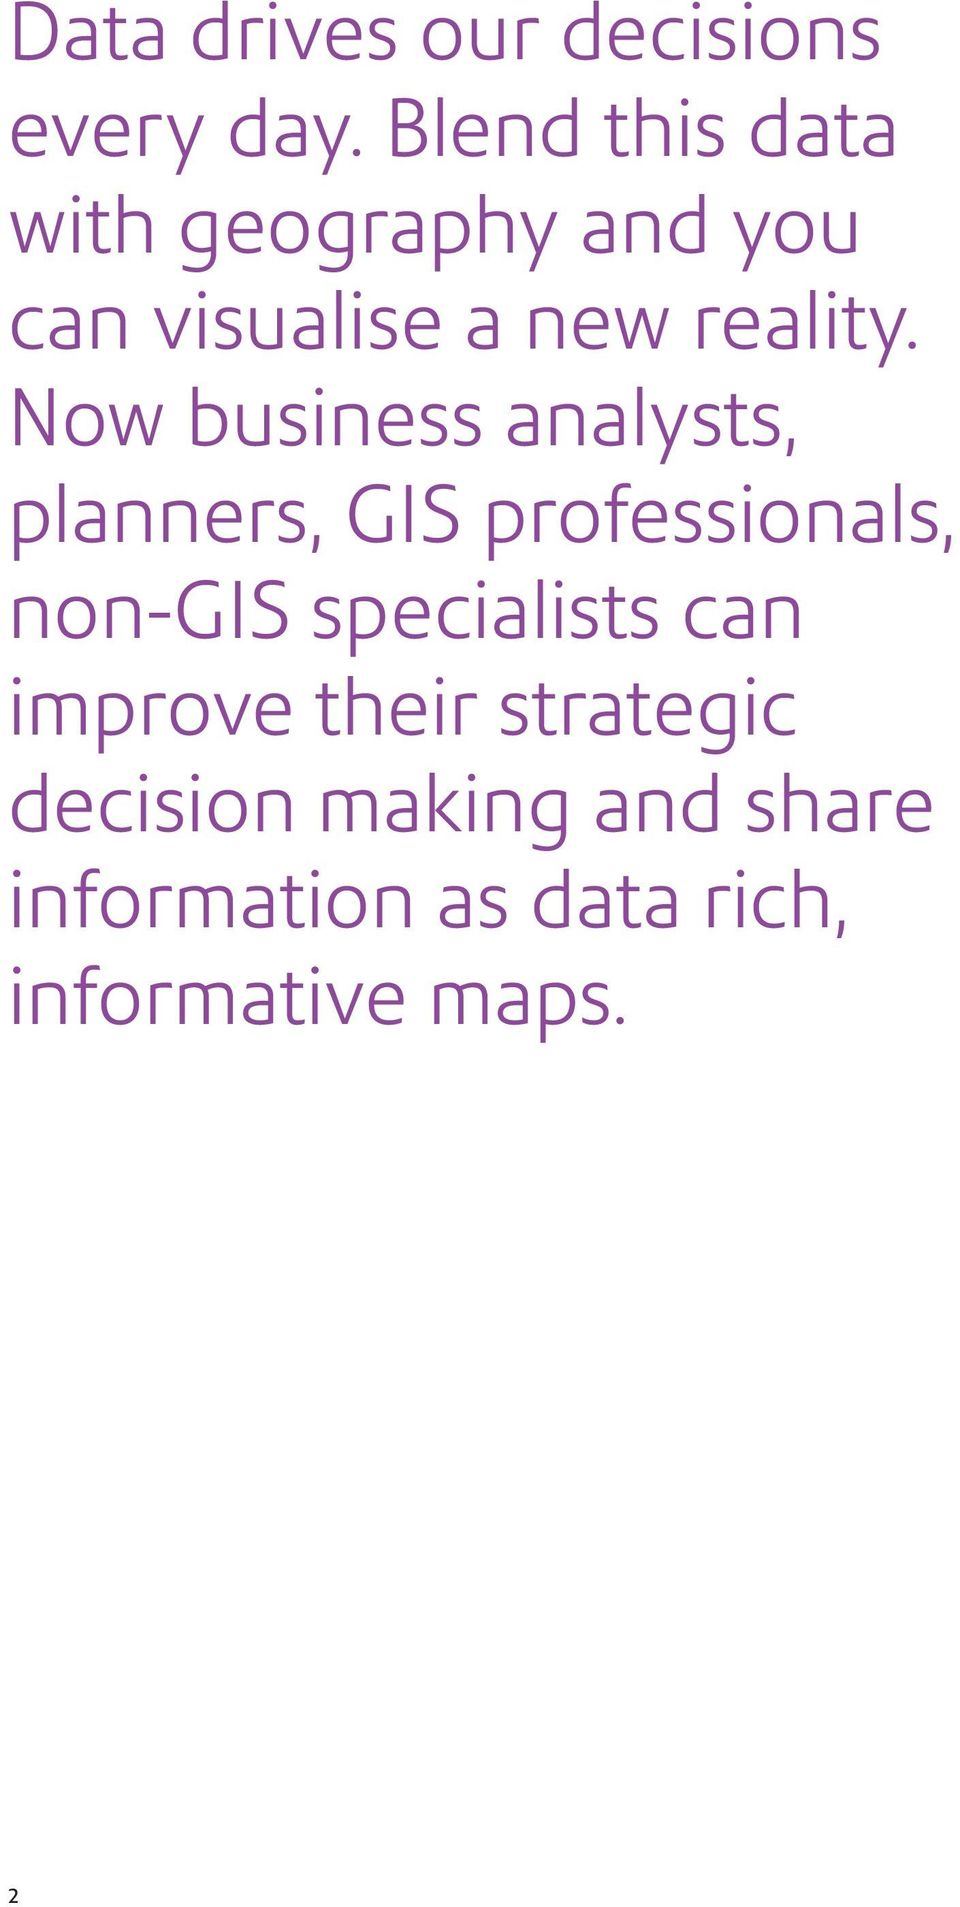 Now business analysts, planners, GIS professionals, non-gis